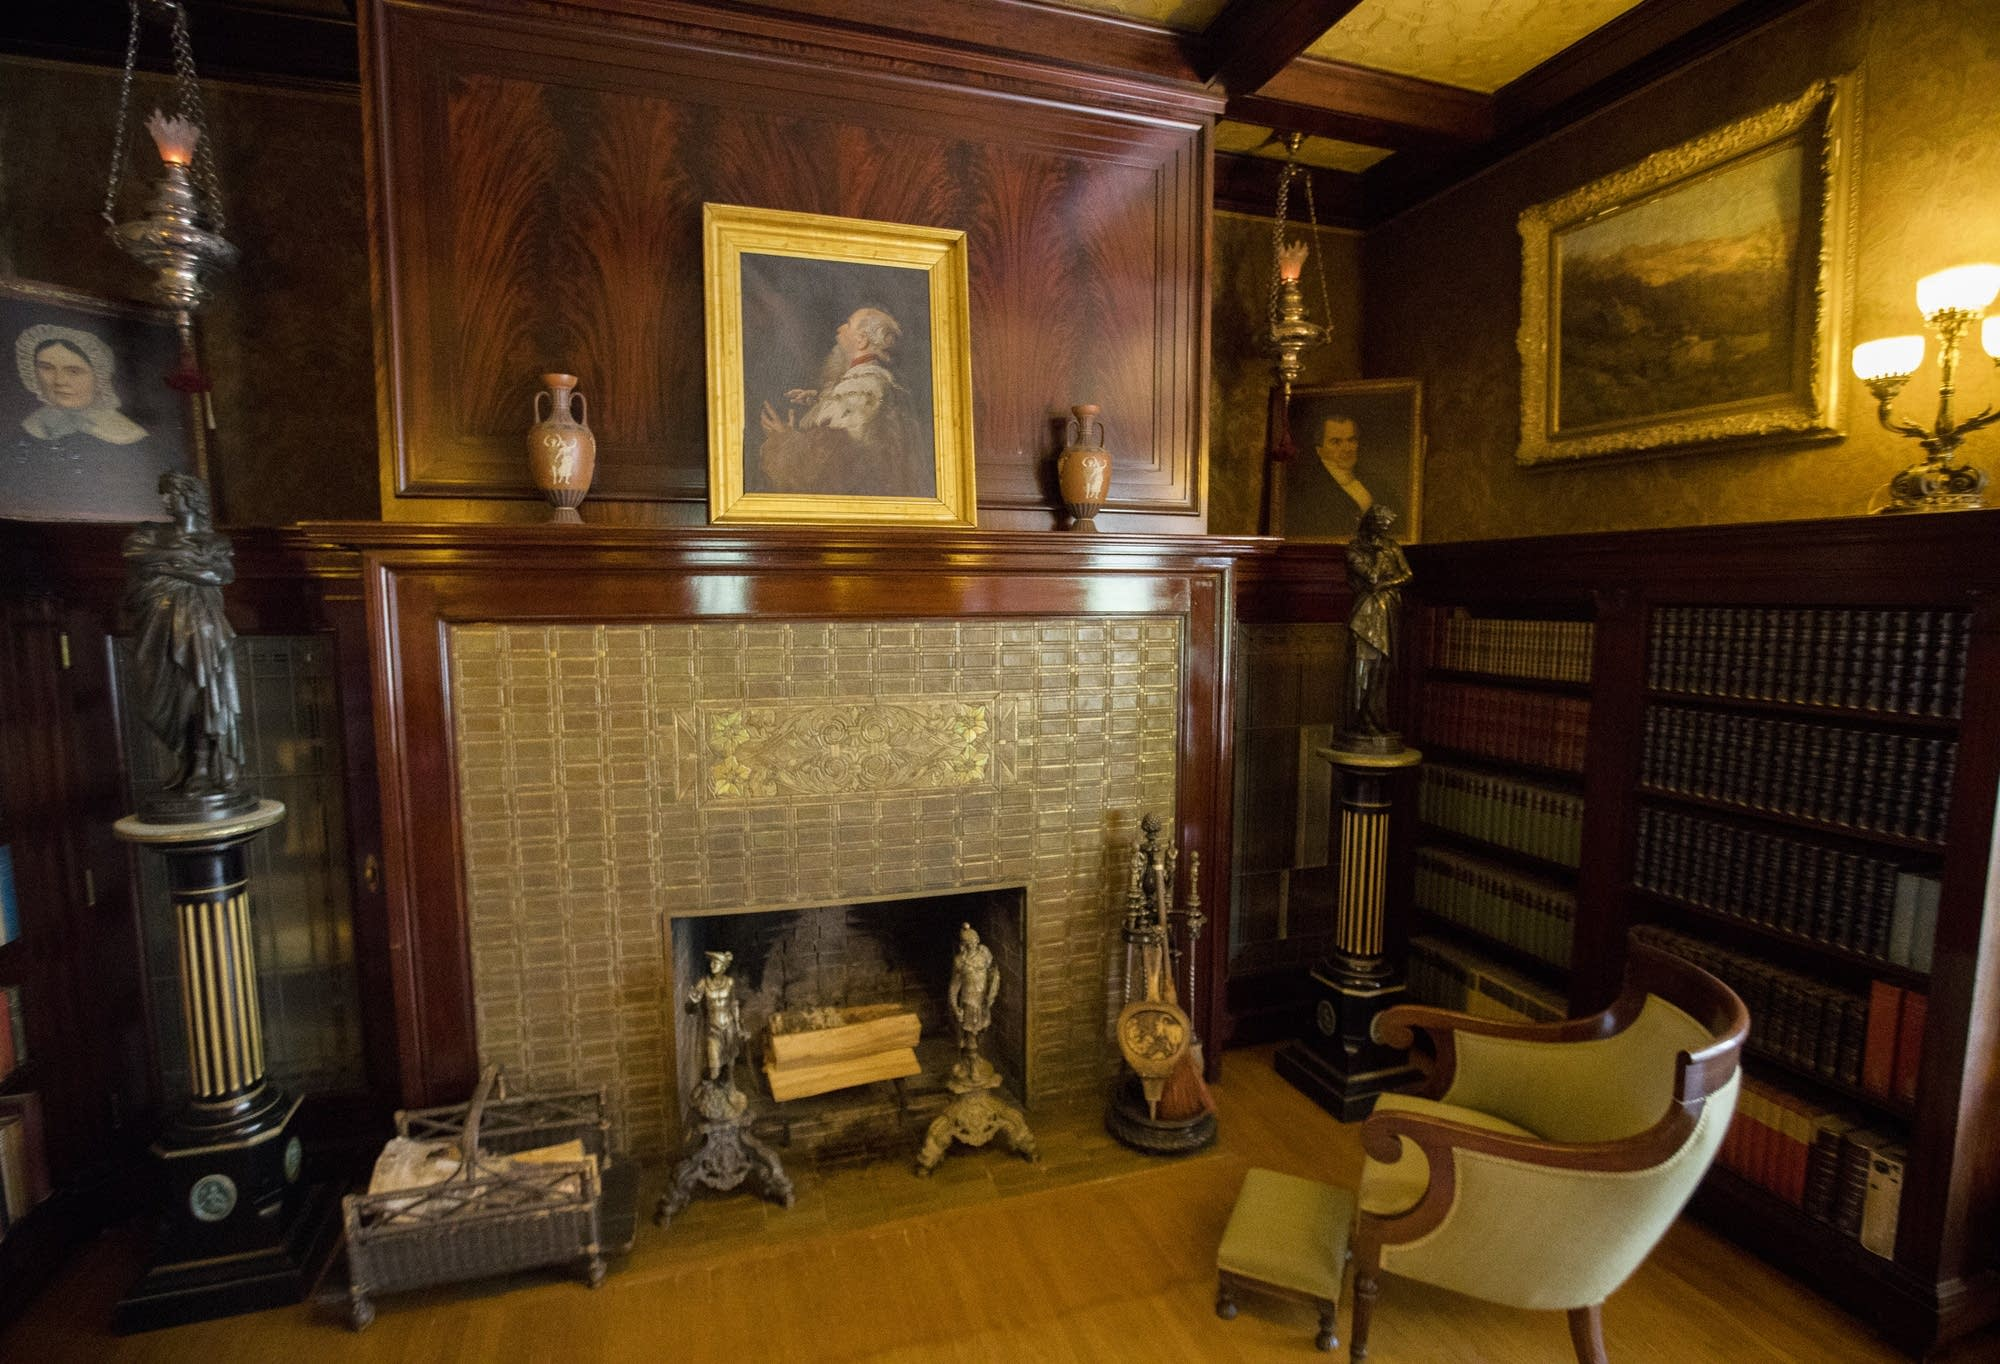 A view of the library at Glensheen Mansion.